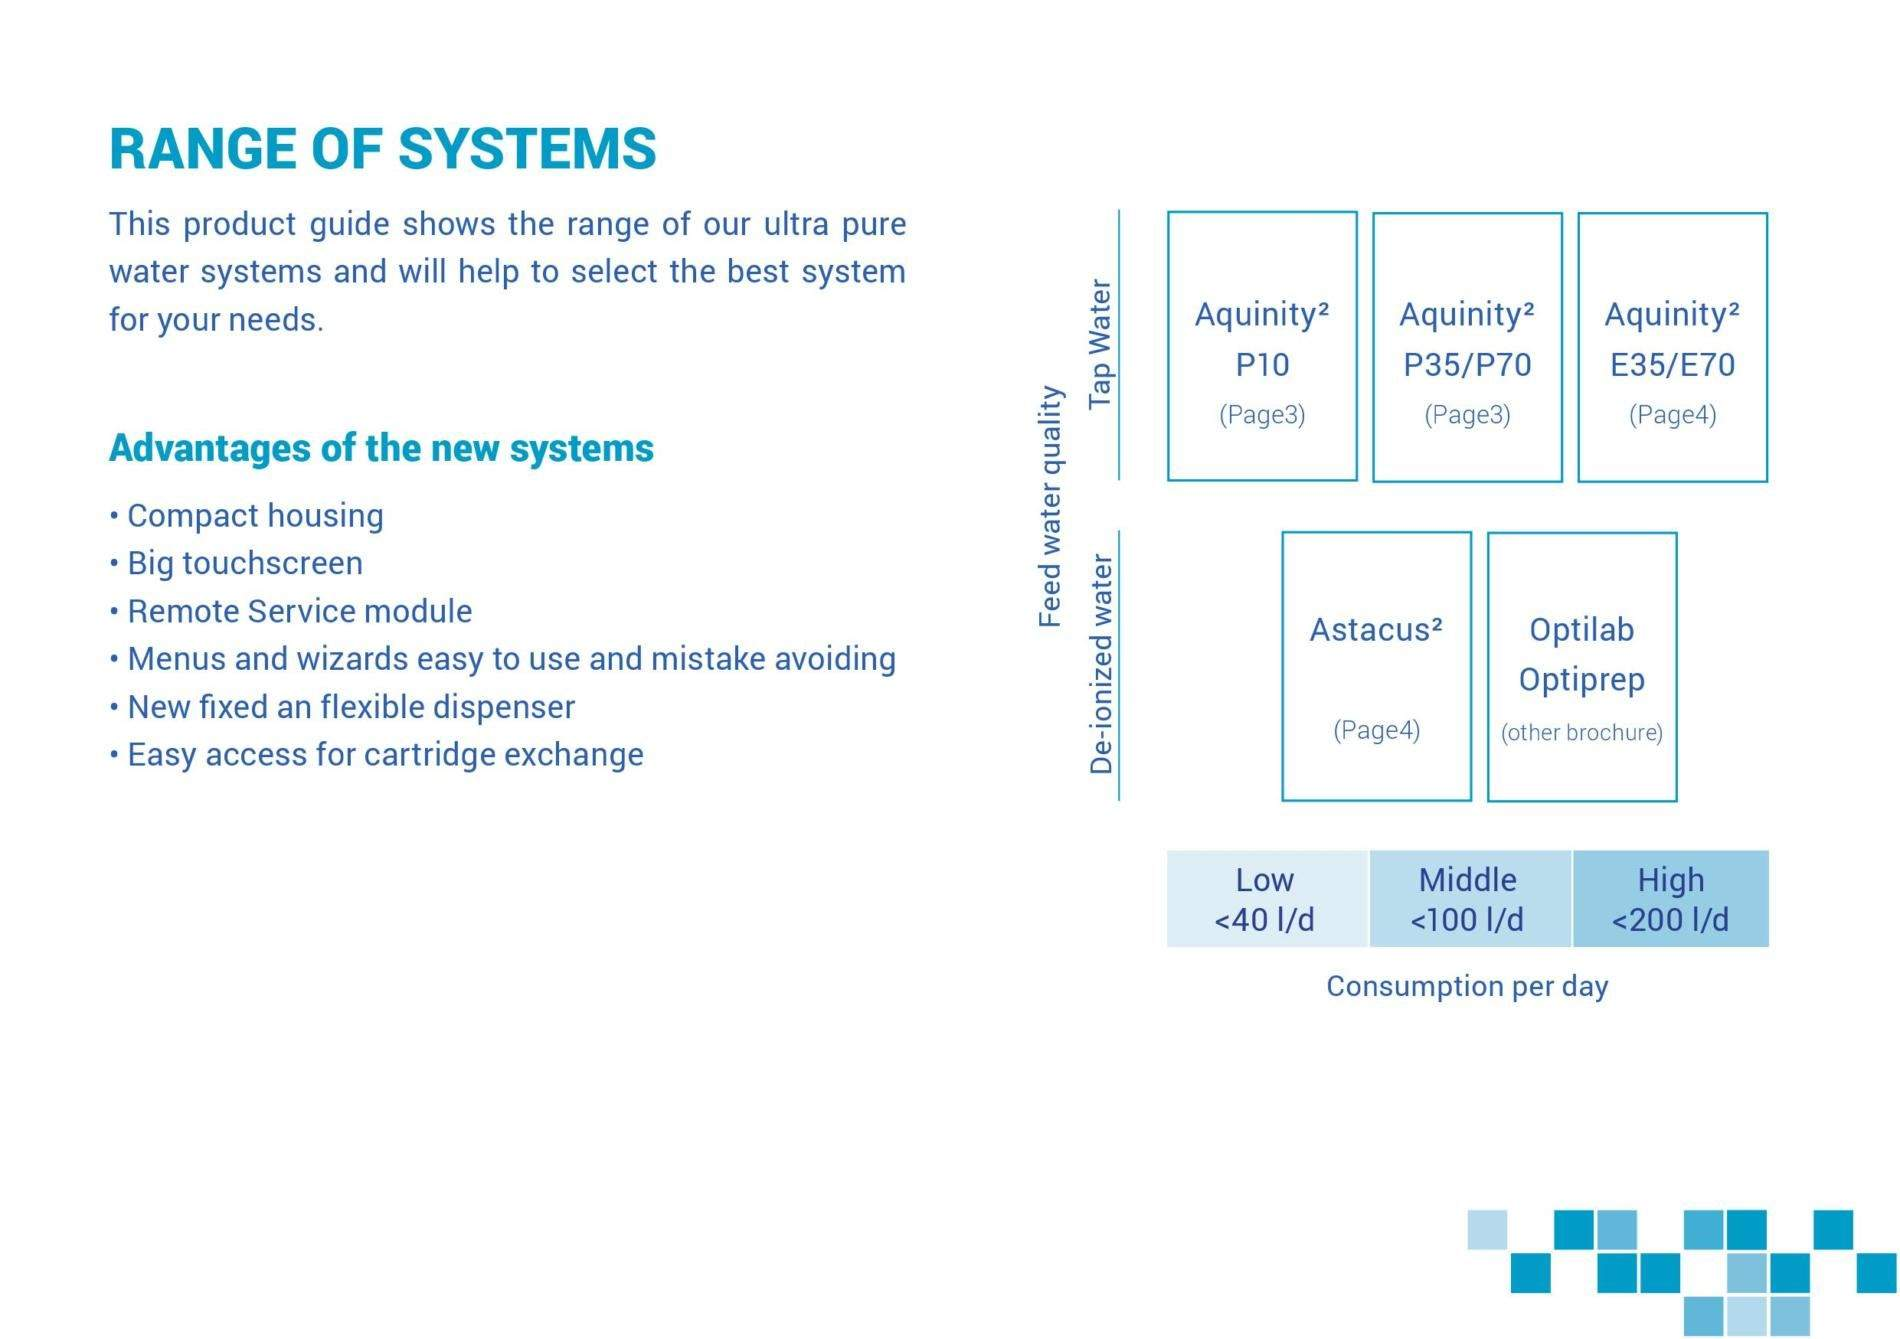 Range of systems